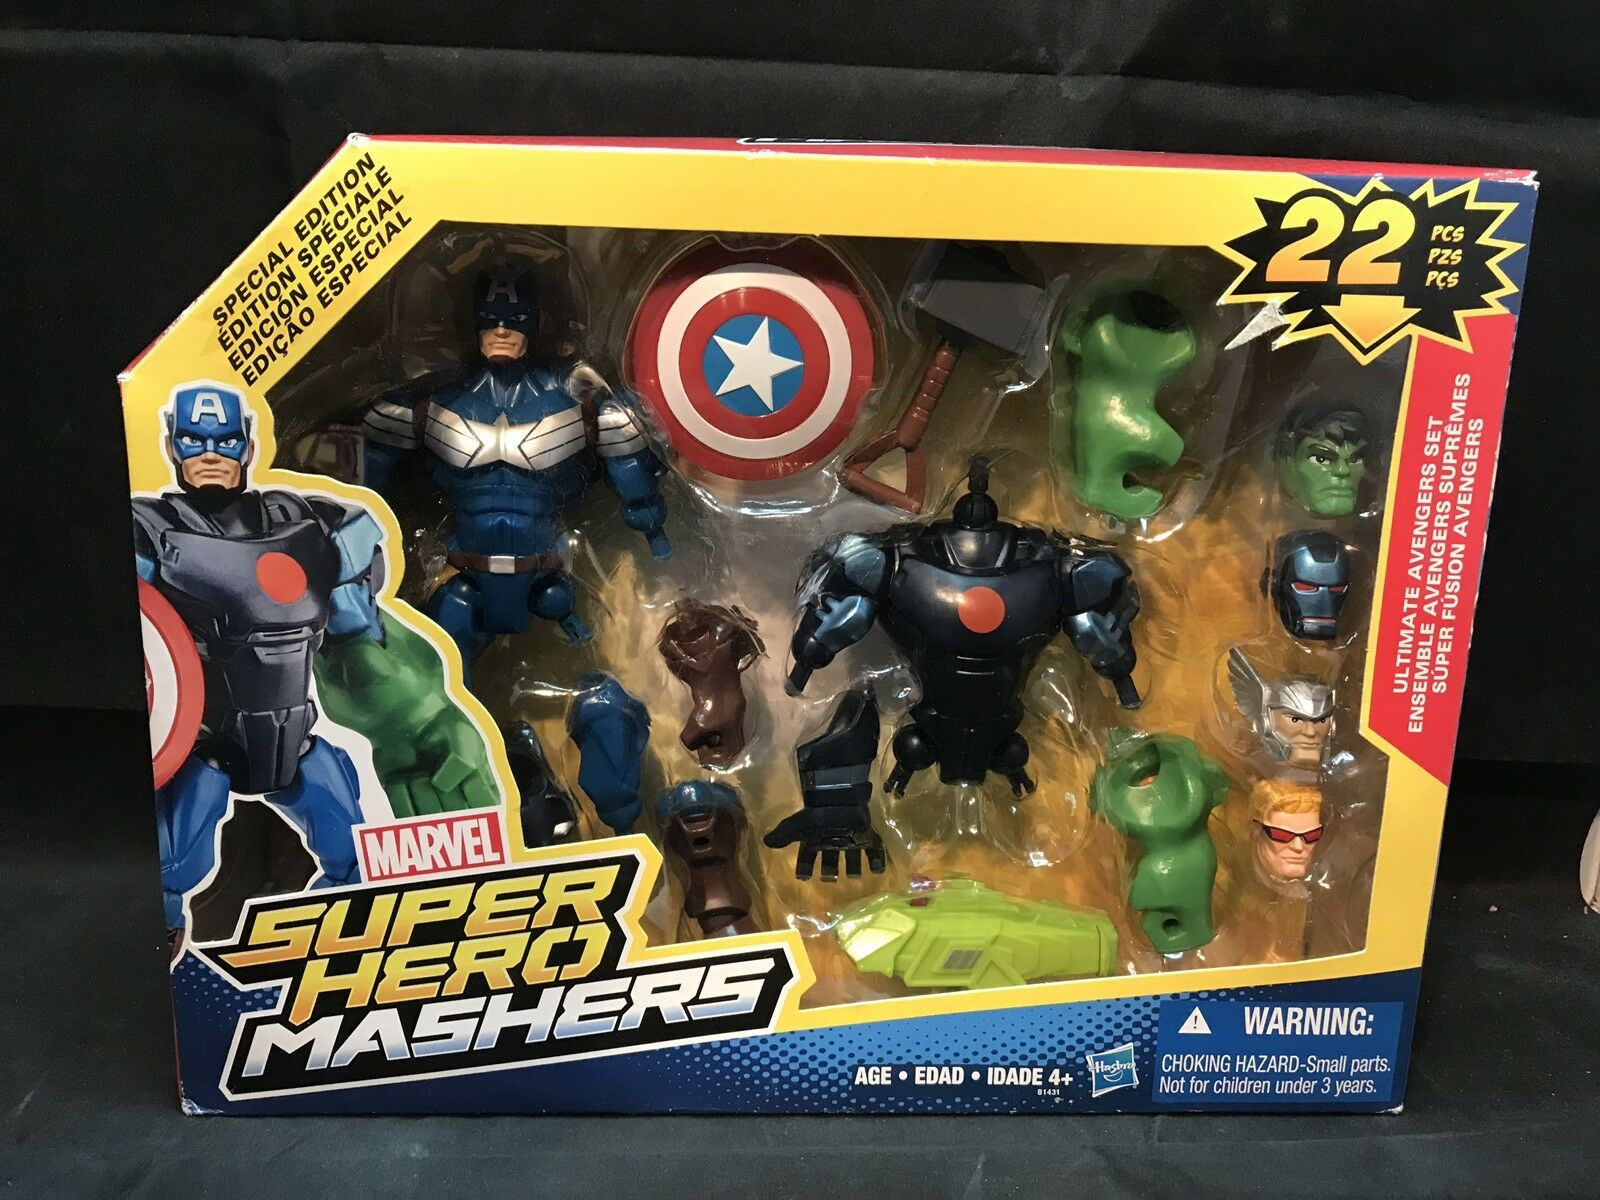 Marvel avengers superhelden - casanovas gab 's zur zeit der ultimative  set - 22 - pcs special edition